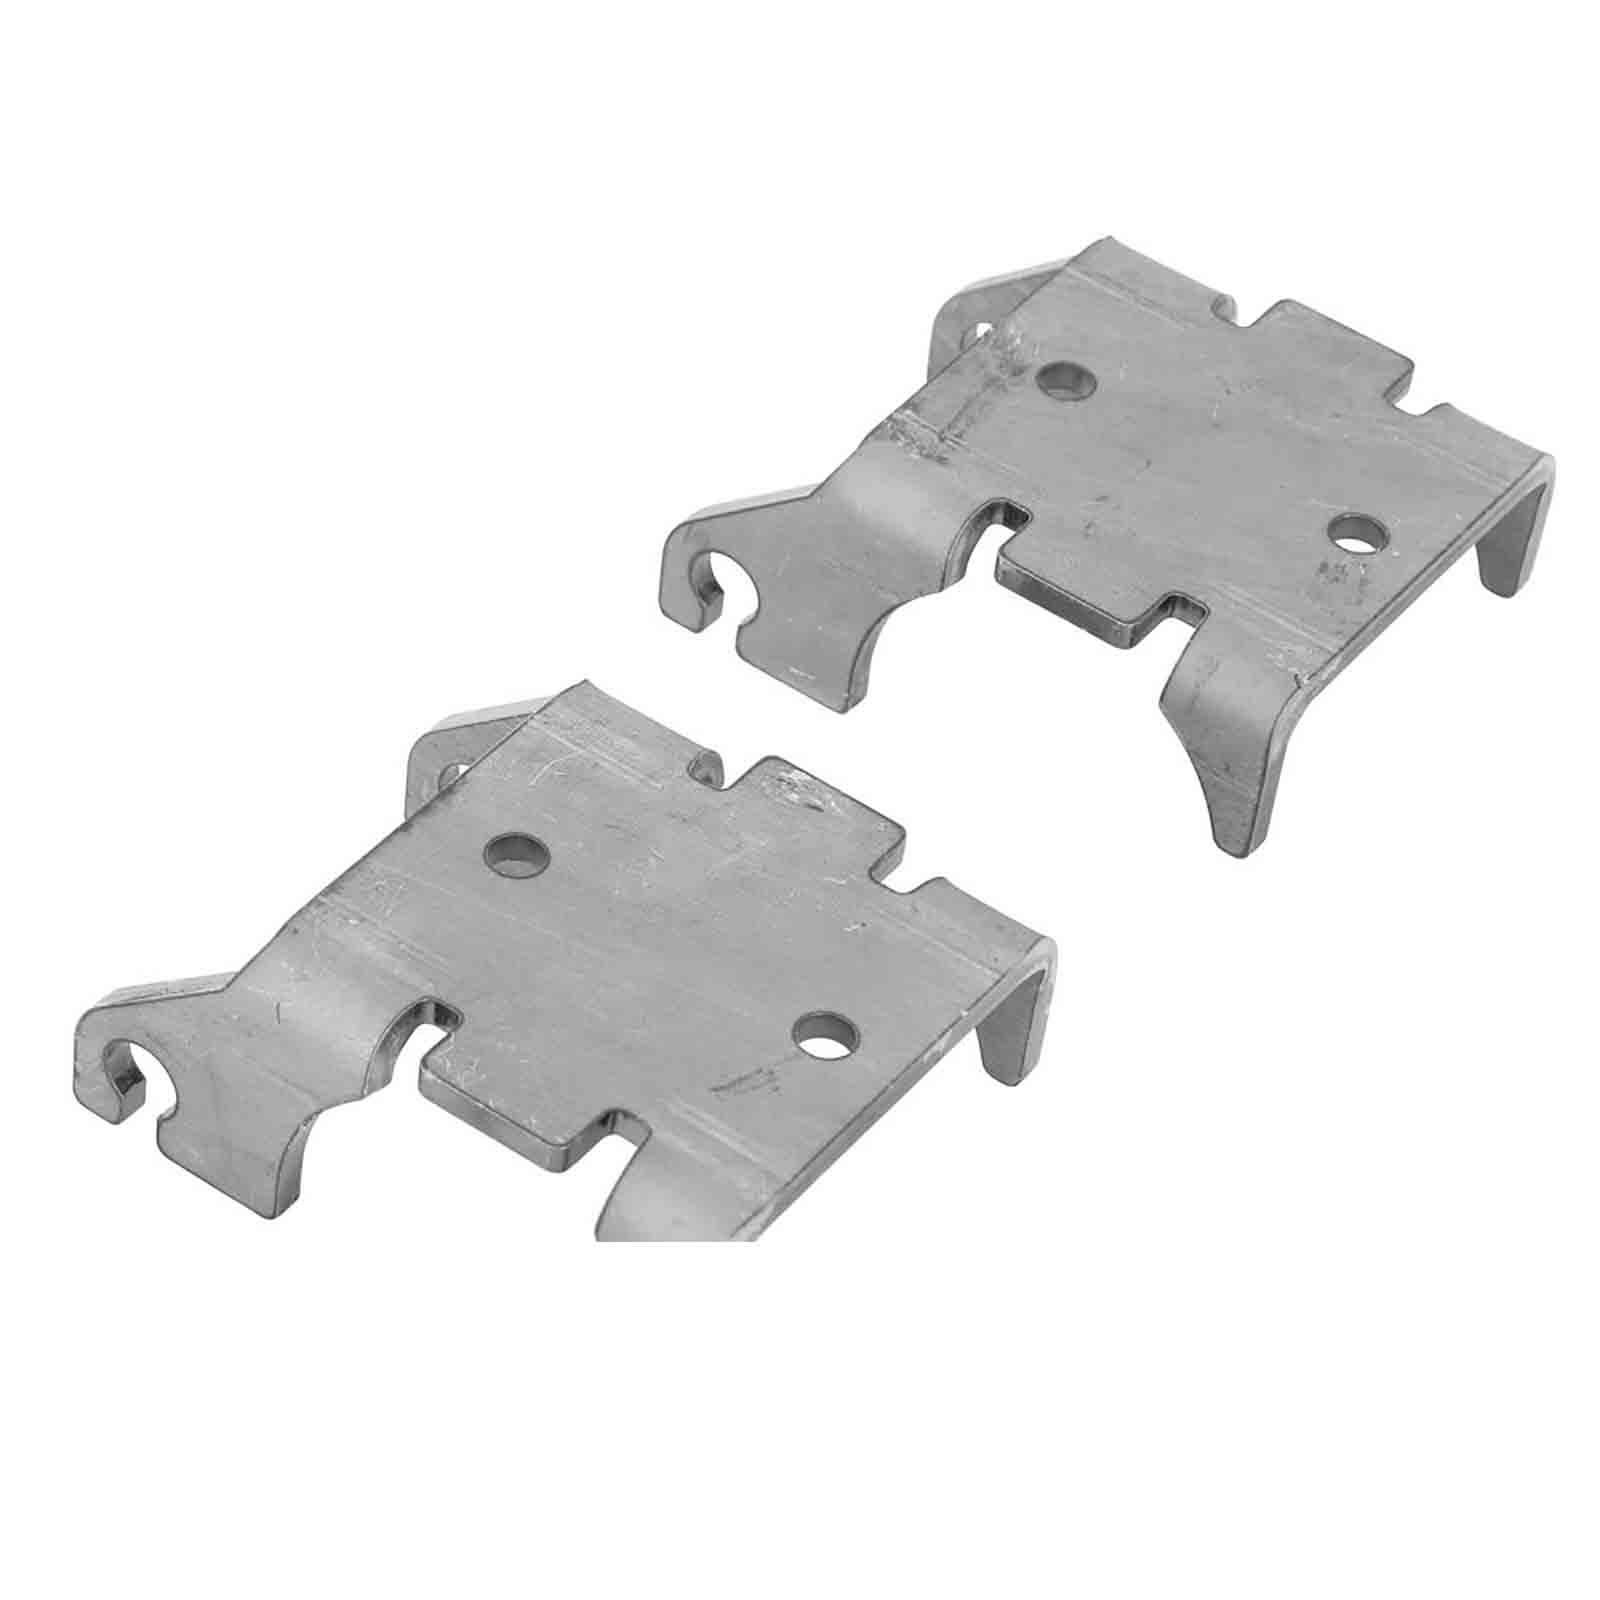 Rubicon express wrangler jk 07 18 weld on bump stops pads ricambi jeep